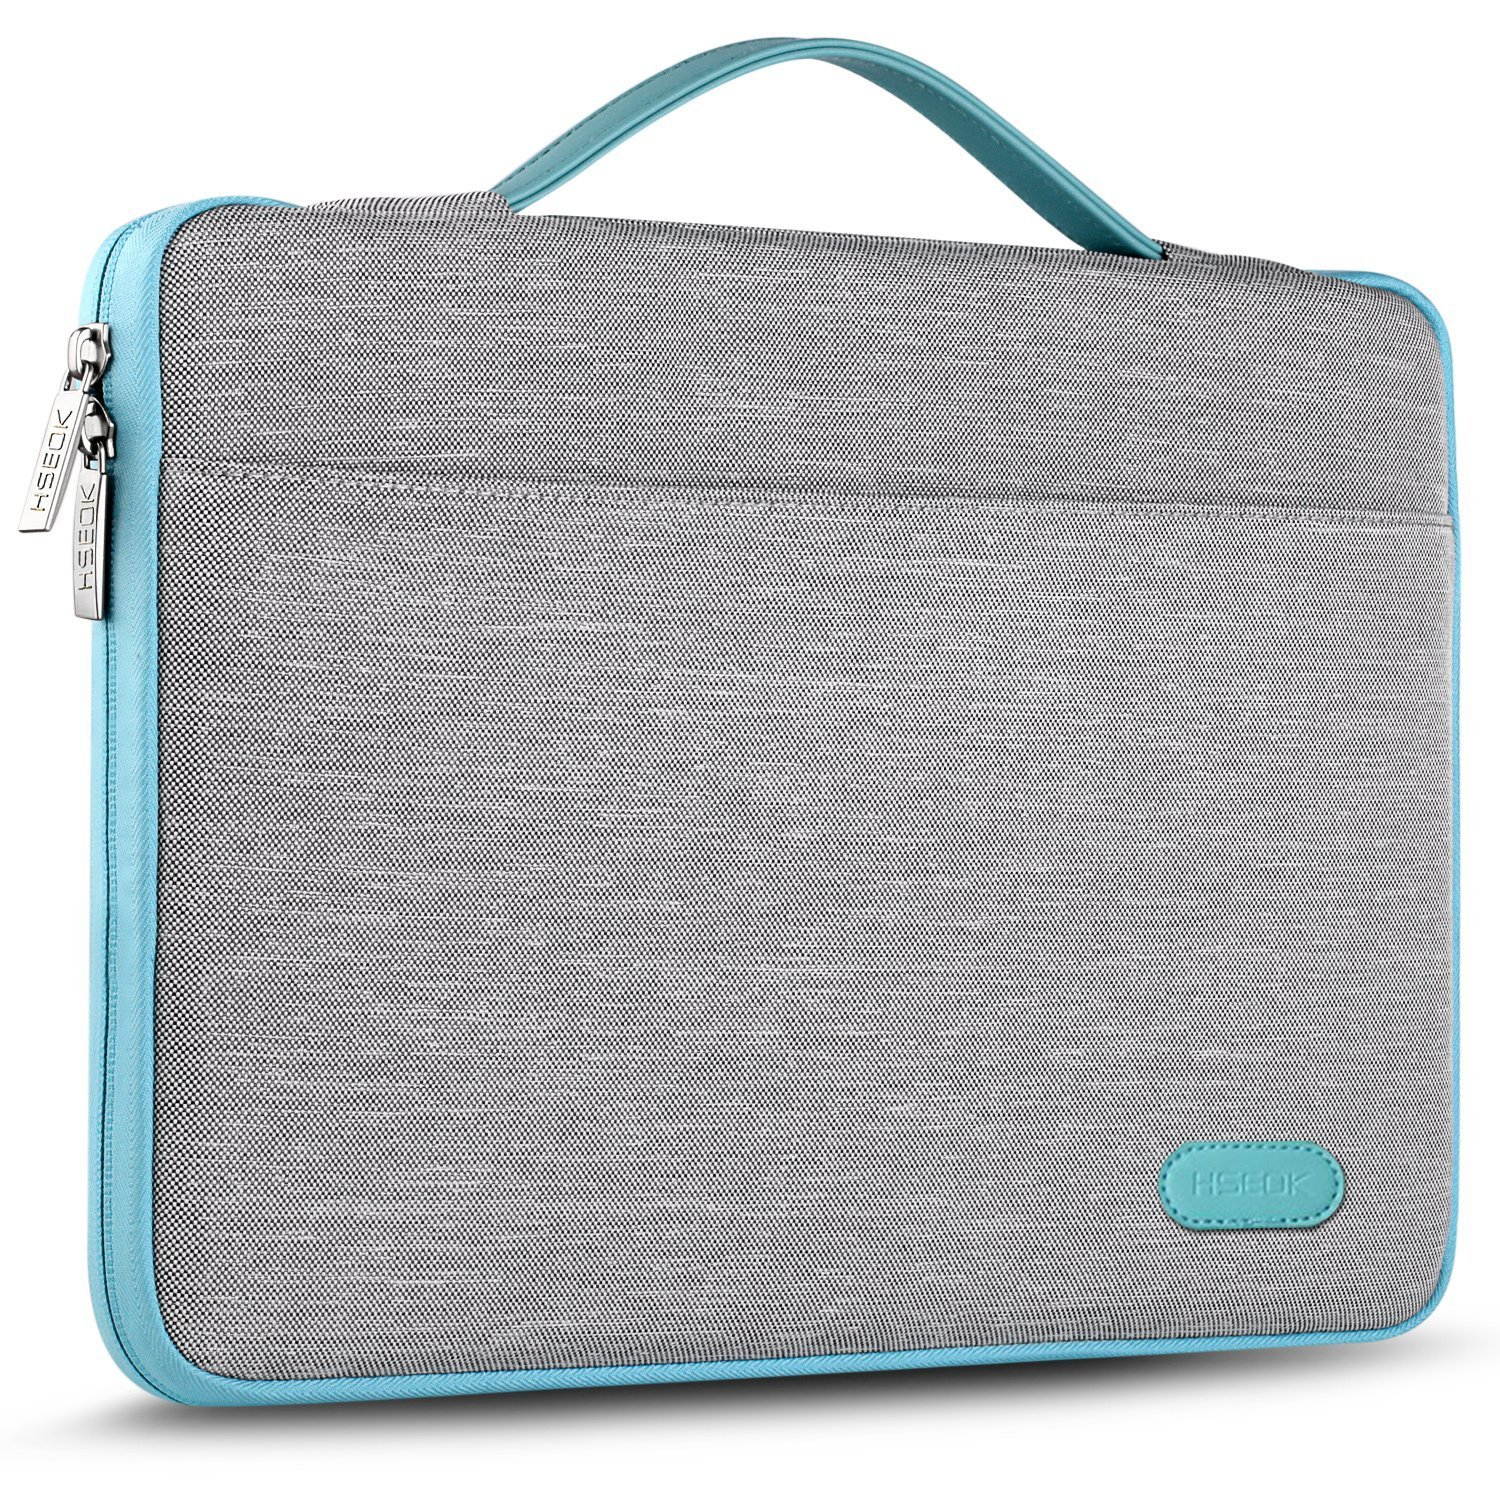 HSEOK 13-13.3 Inch Laptop Sleeve Case, Environmental-Friendly Spill-Resistant Briefcase for 13-Inch MacBook Air/Pro, iPad Pro 12.9-Inch, Surface Laptop/Book/Pro3/Pro4 and Most 14-Inch Laptop, Gray by Hseok (Image #1)